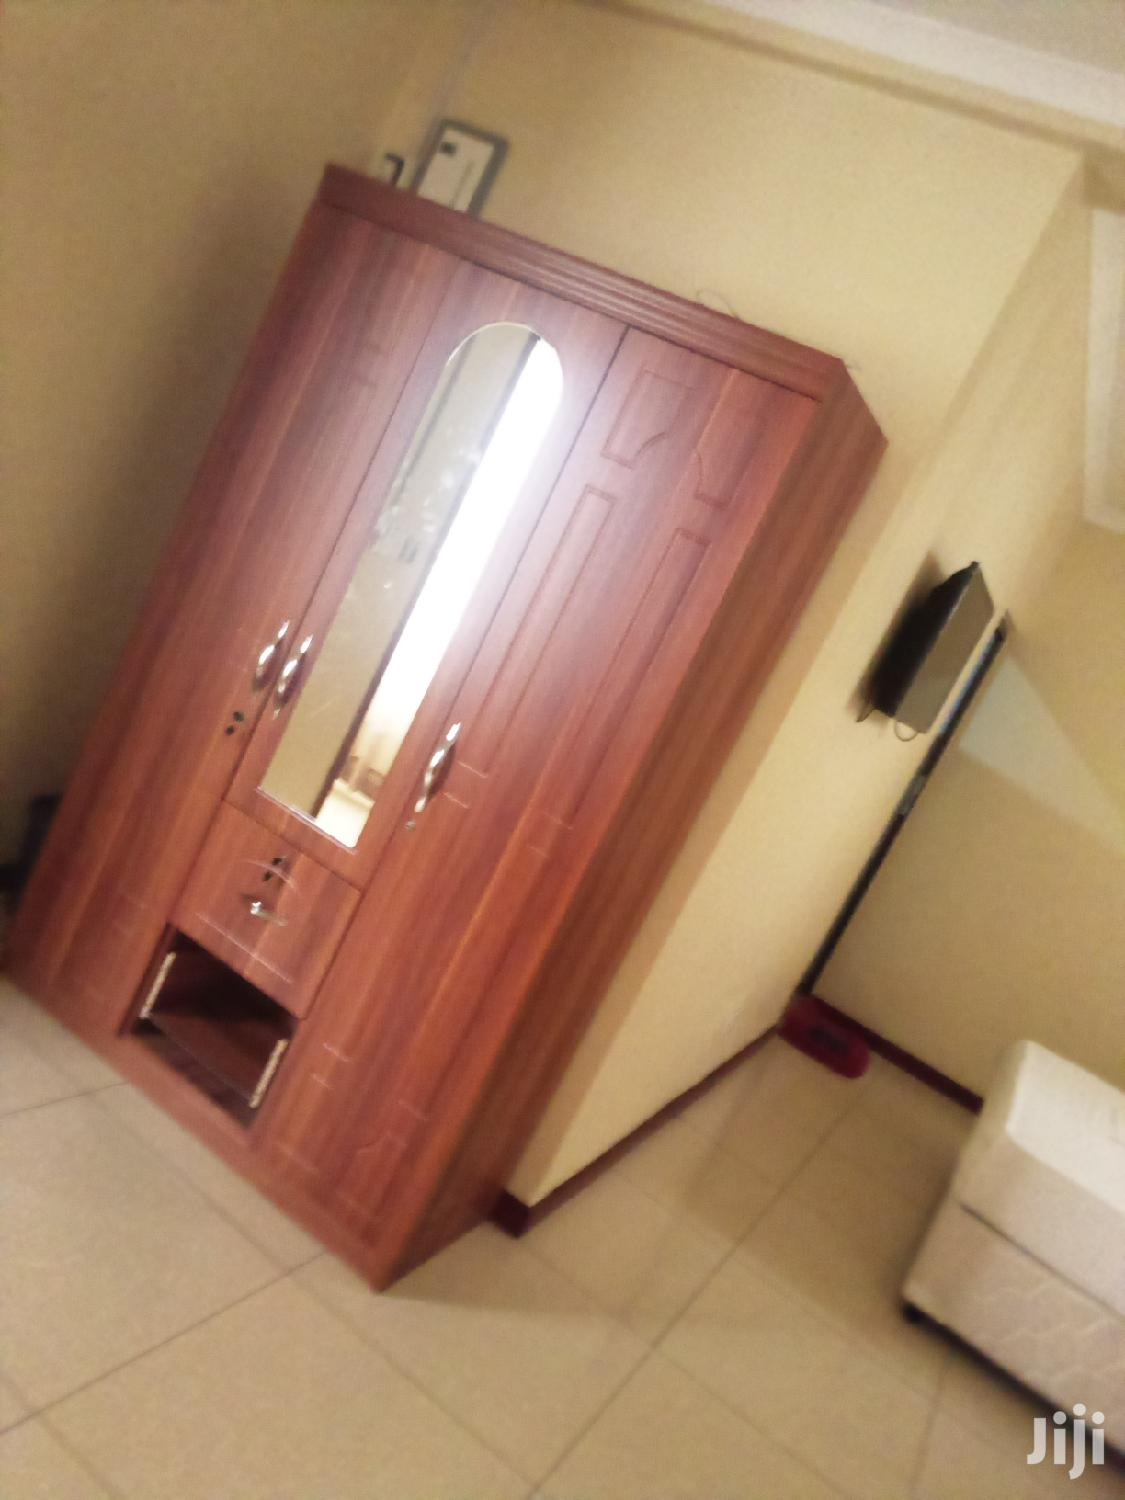 1master Bedroom Full Furniture 1month Only | Houses & Apartments For Rent for sale in Sinza, Kinondoni, Tanzania